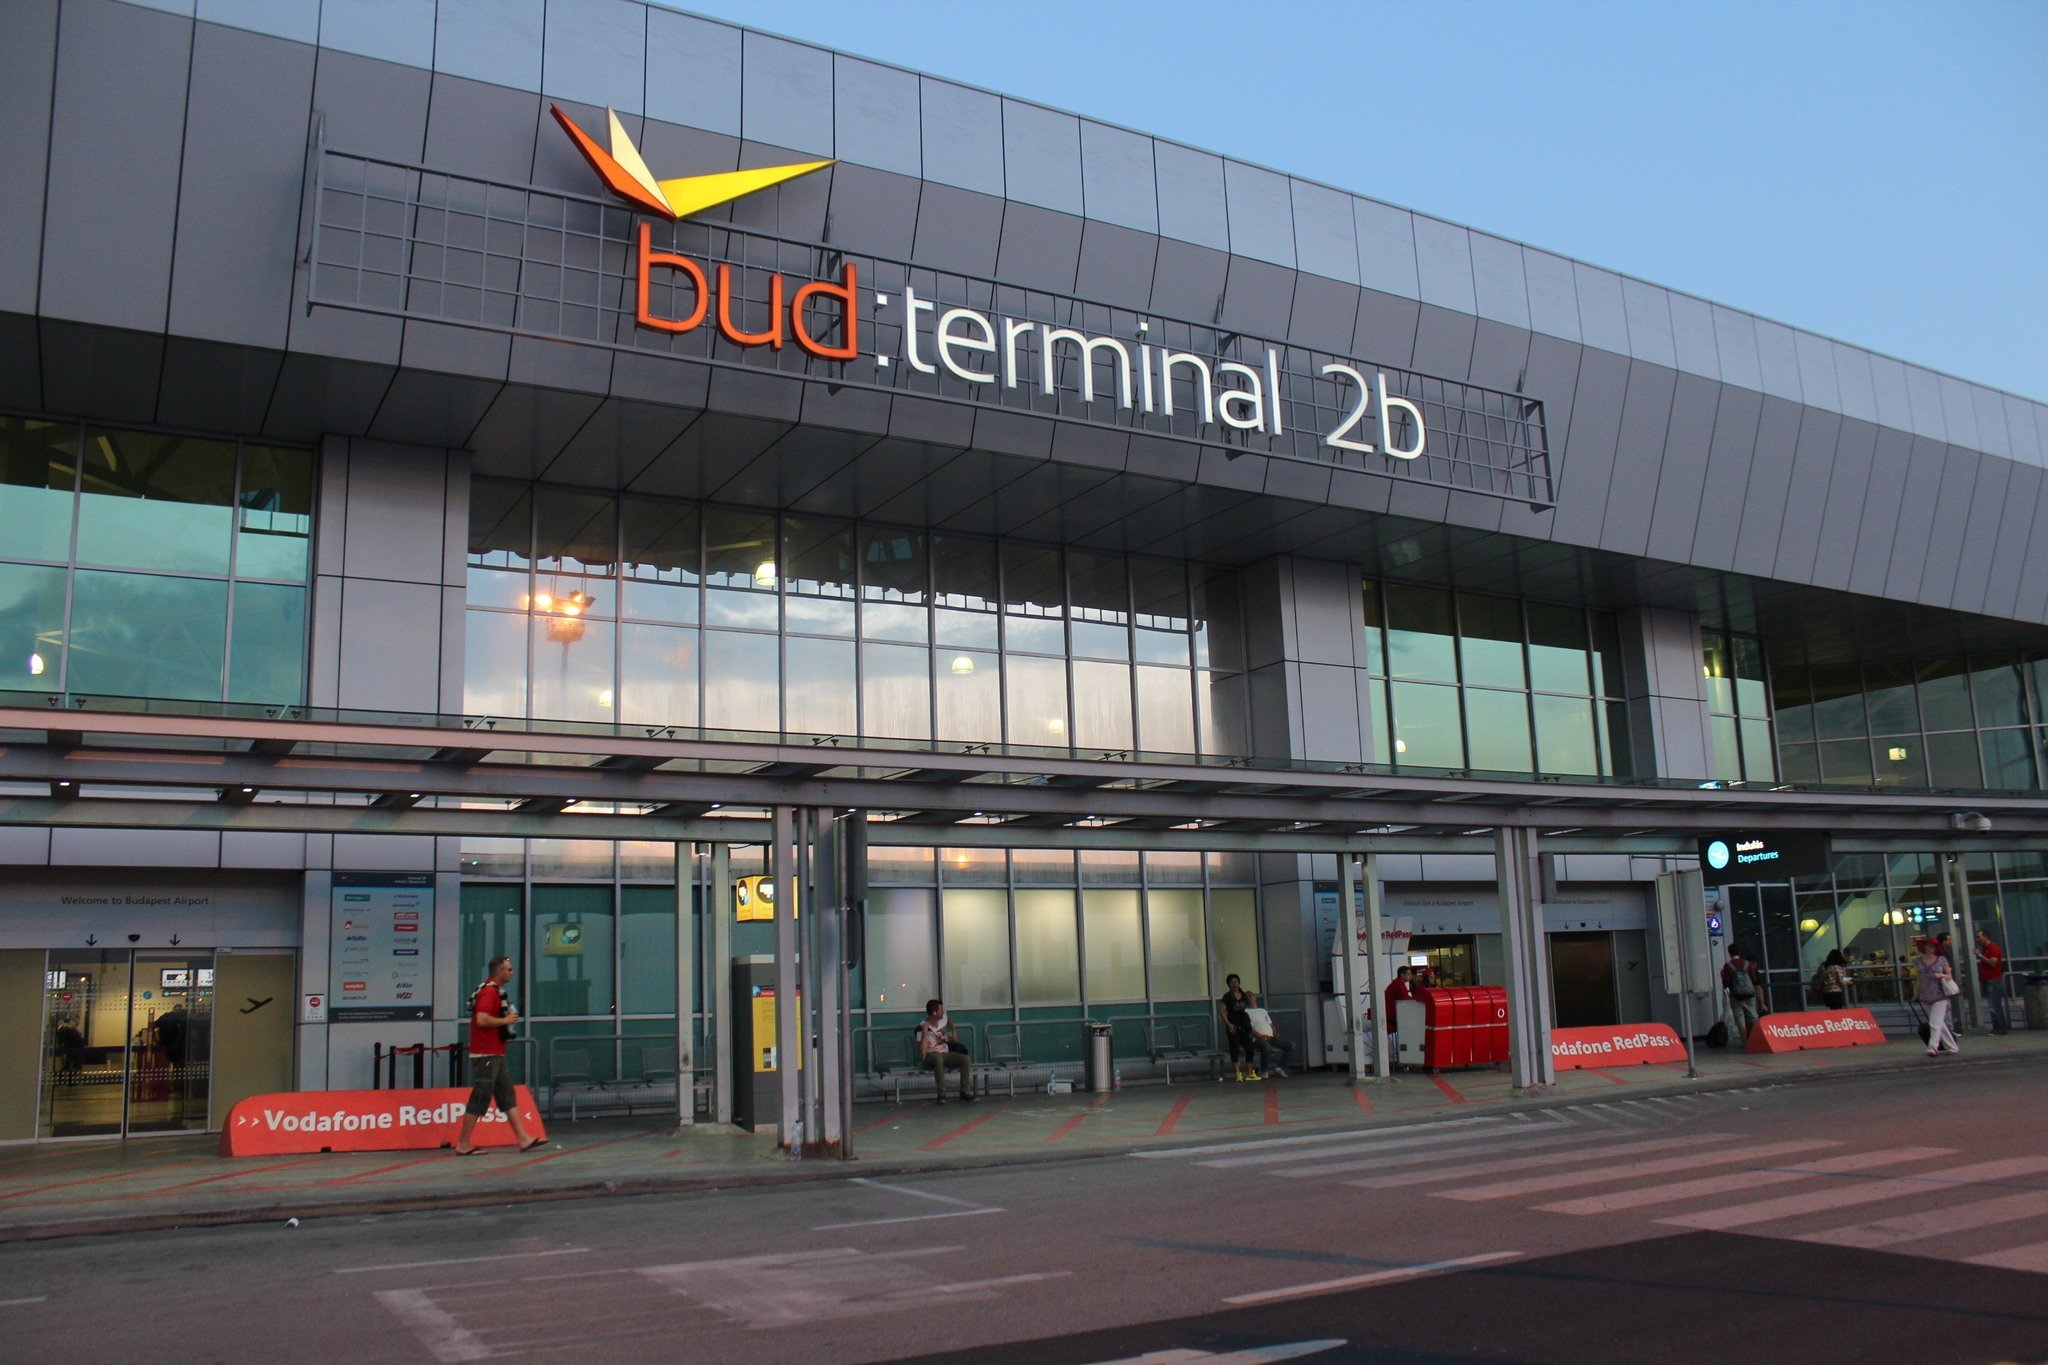 BUD Airport broke record again